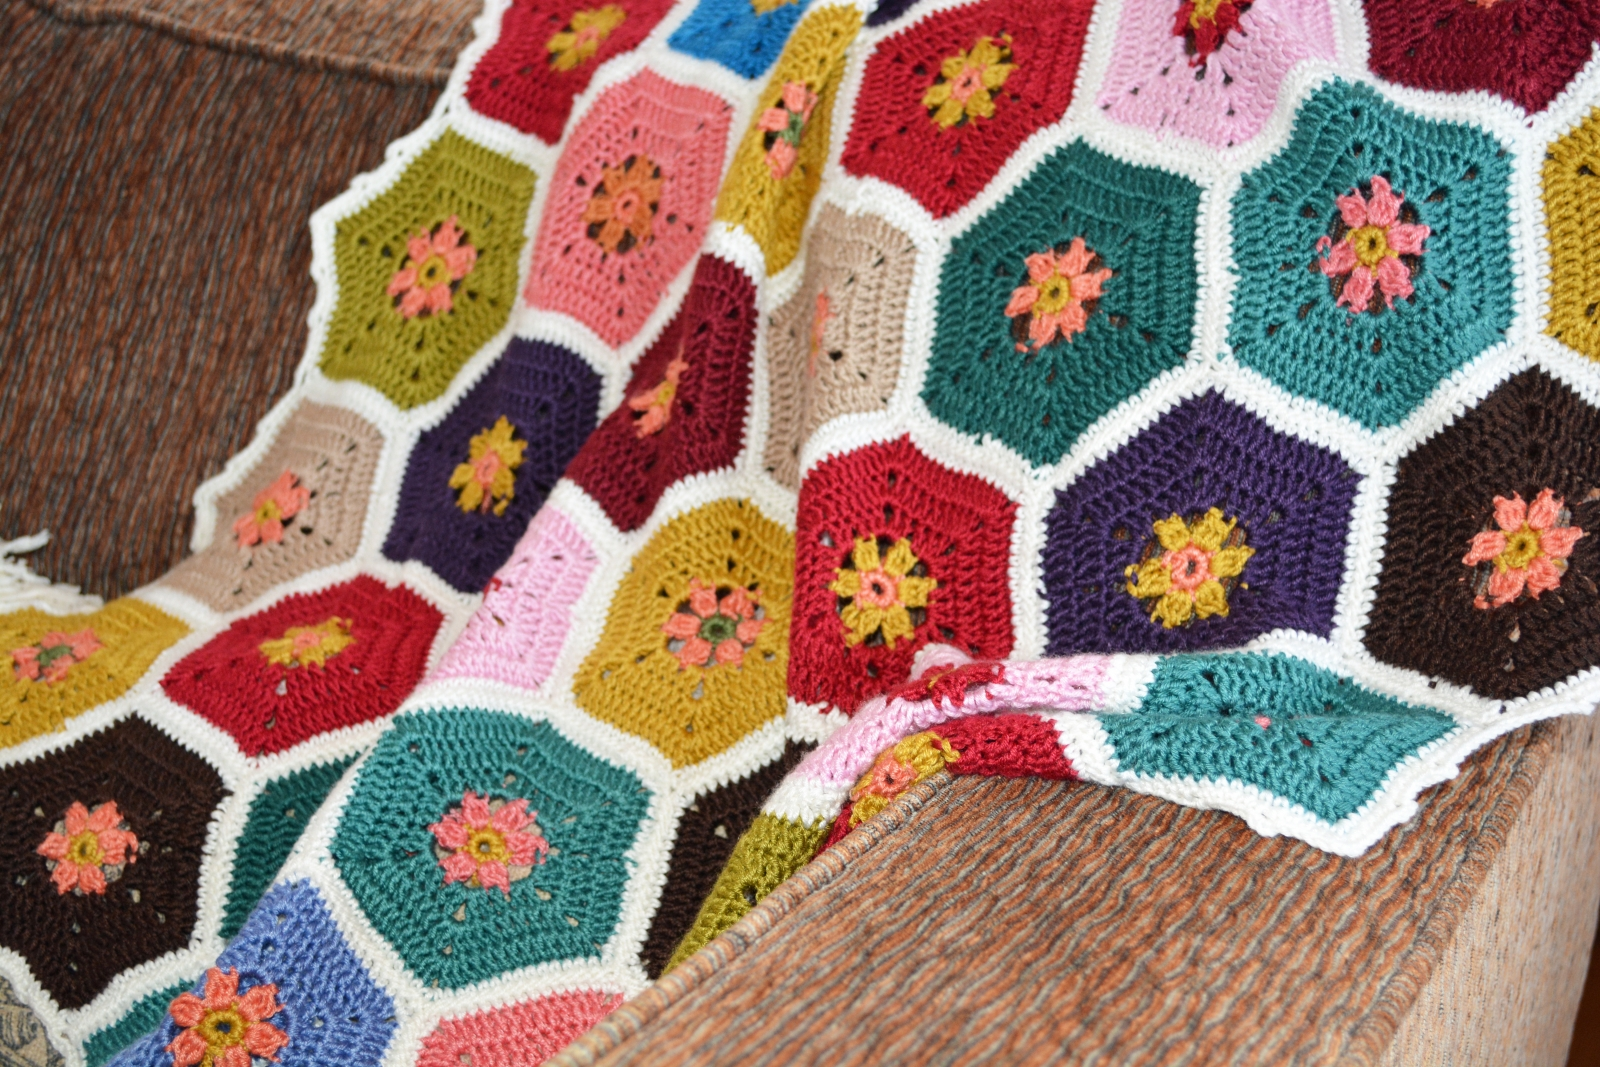 Worktable Wednesday - Multi-colored Crocheted Afghan | Unique ...